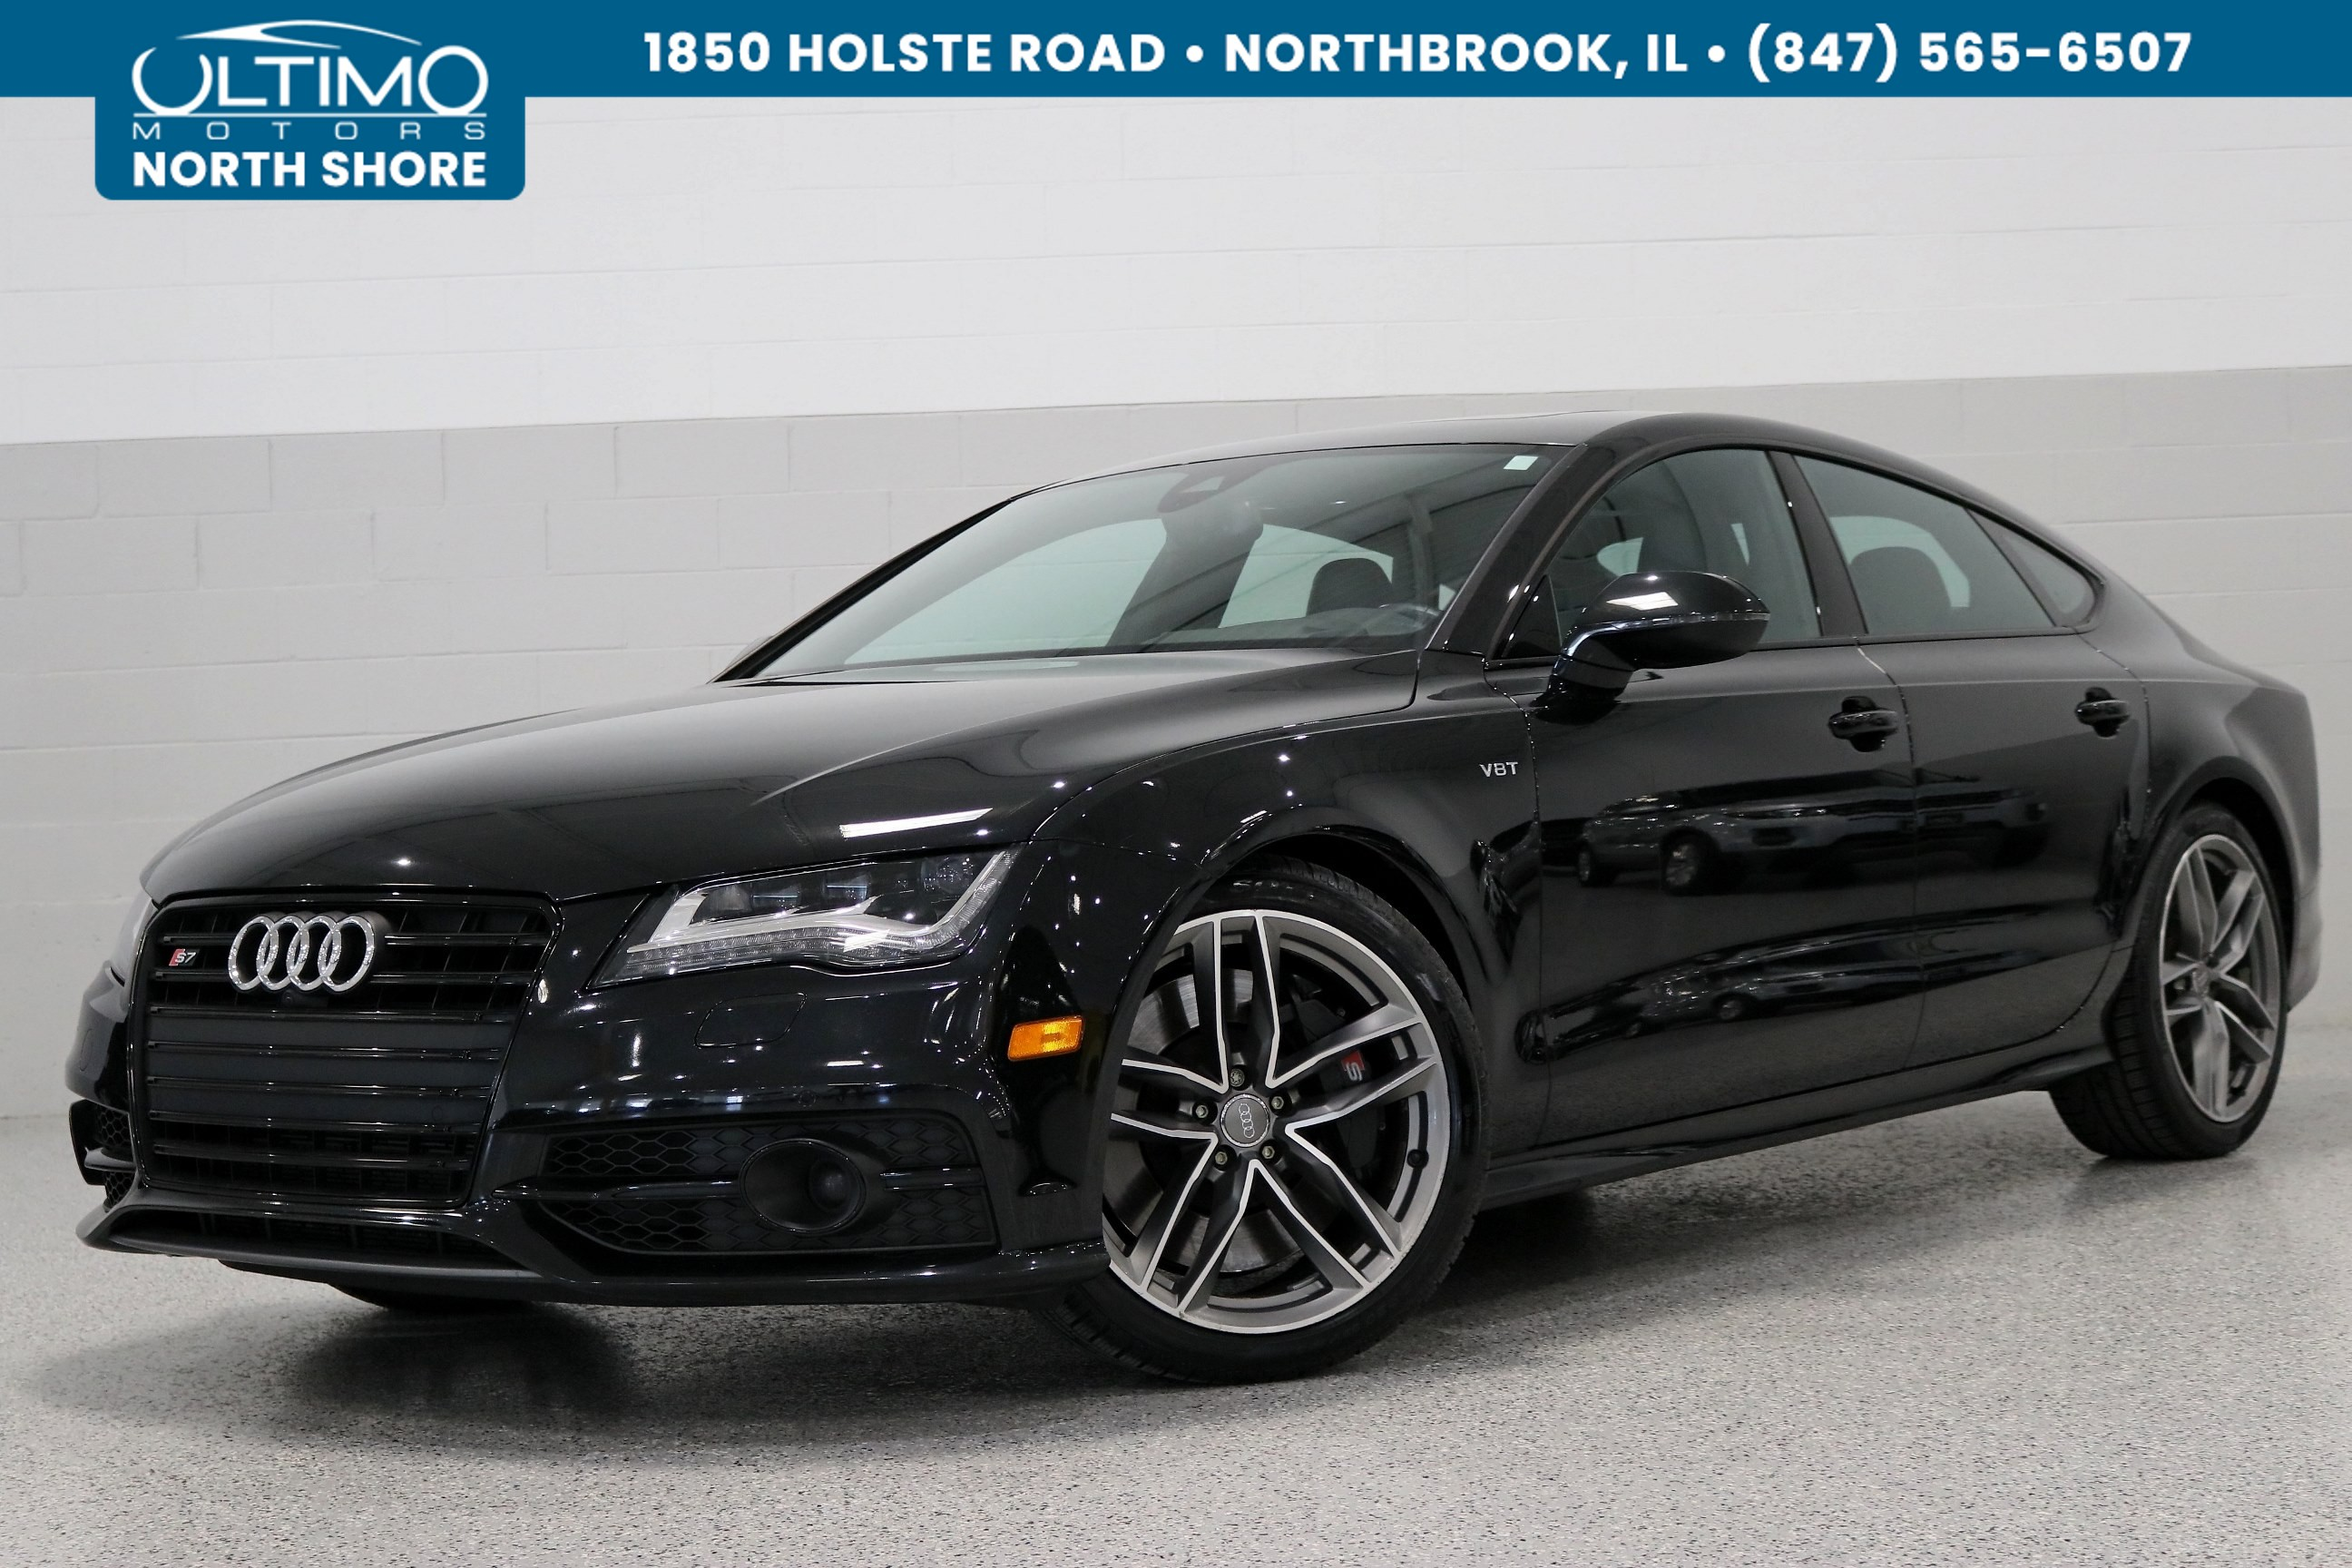 Pre-Owned 2015 Audi S7 4.0T